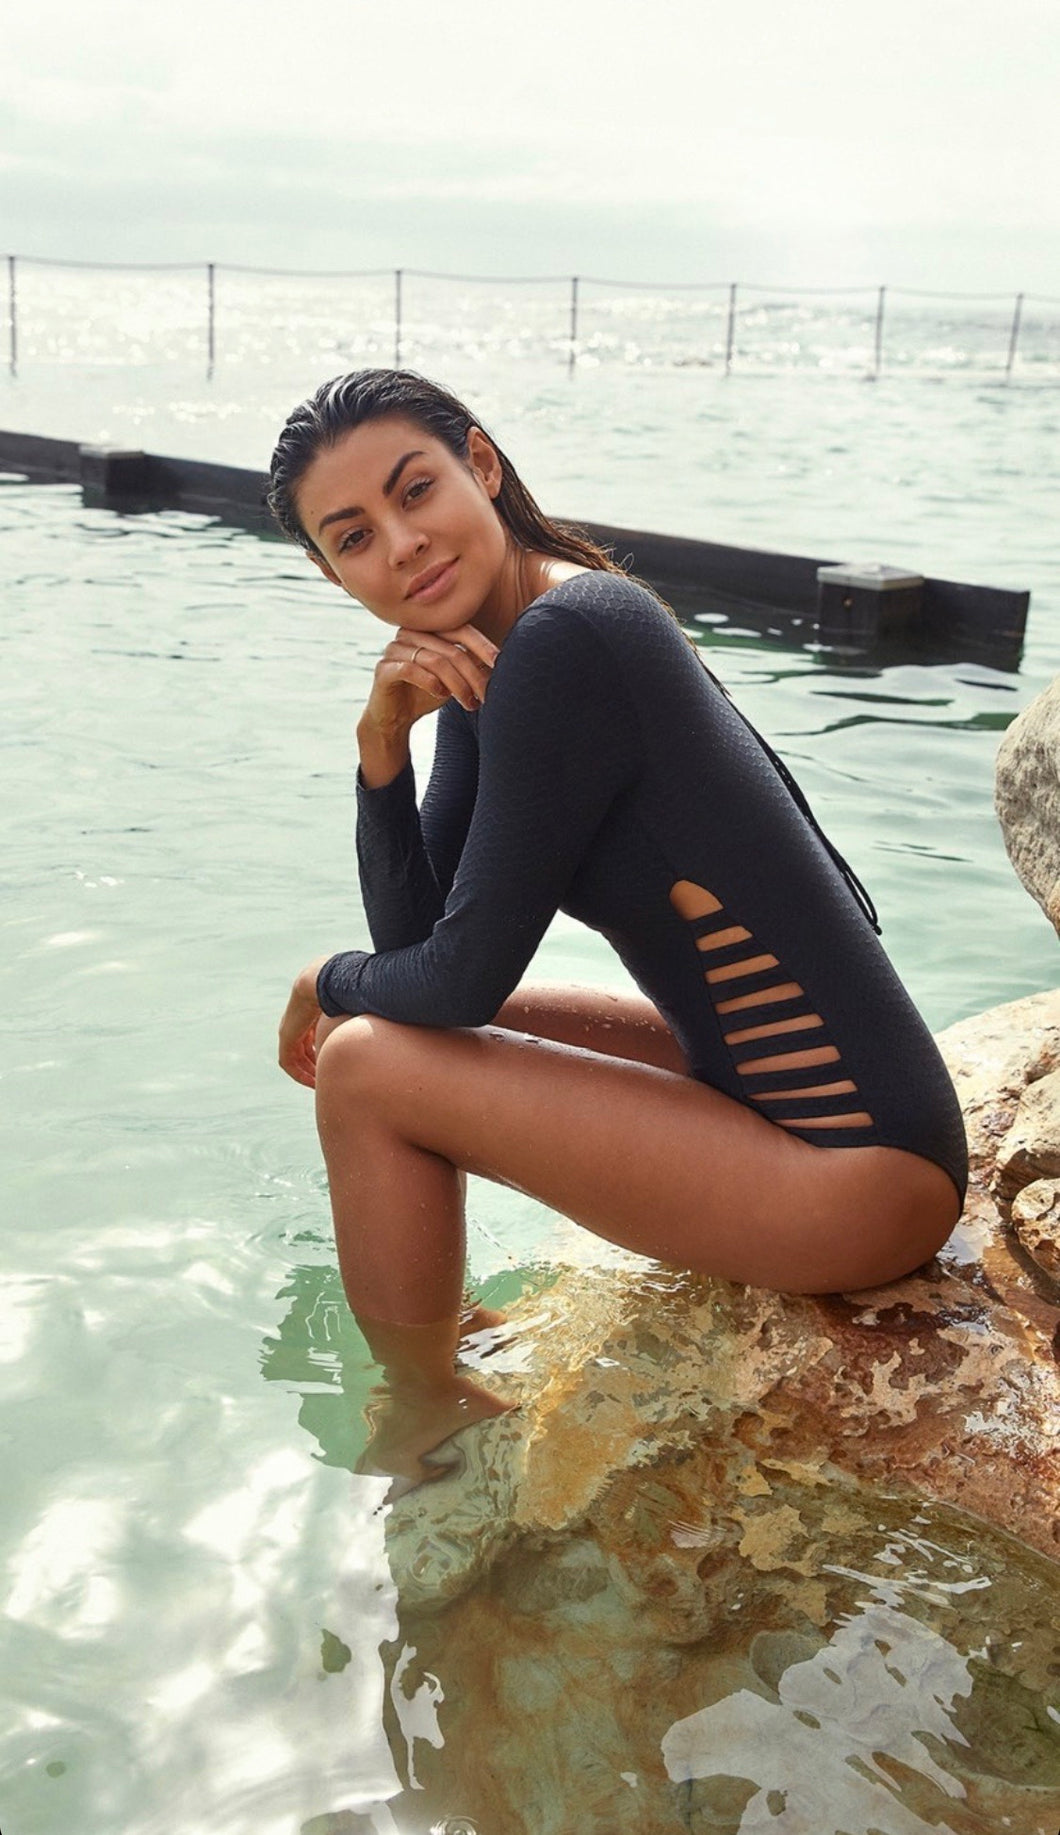 Seafolly Multi Strap One Piece